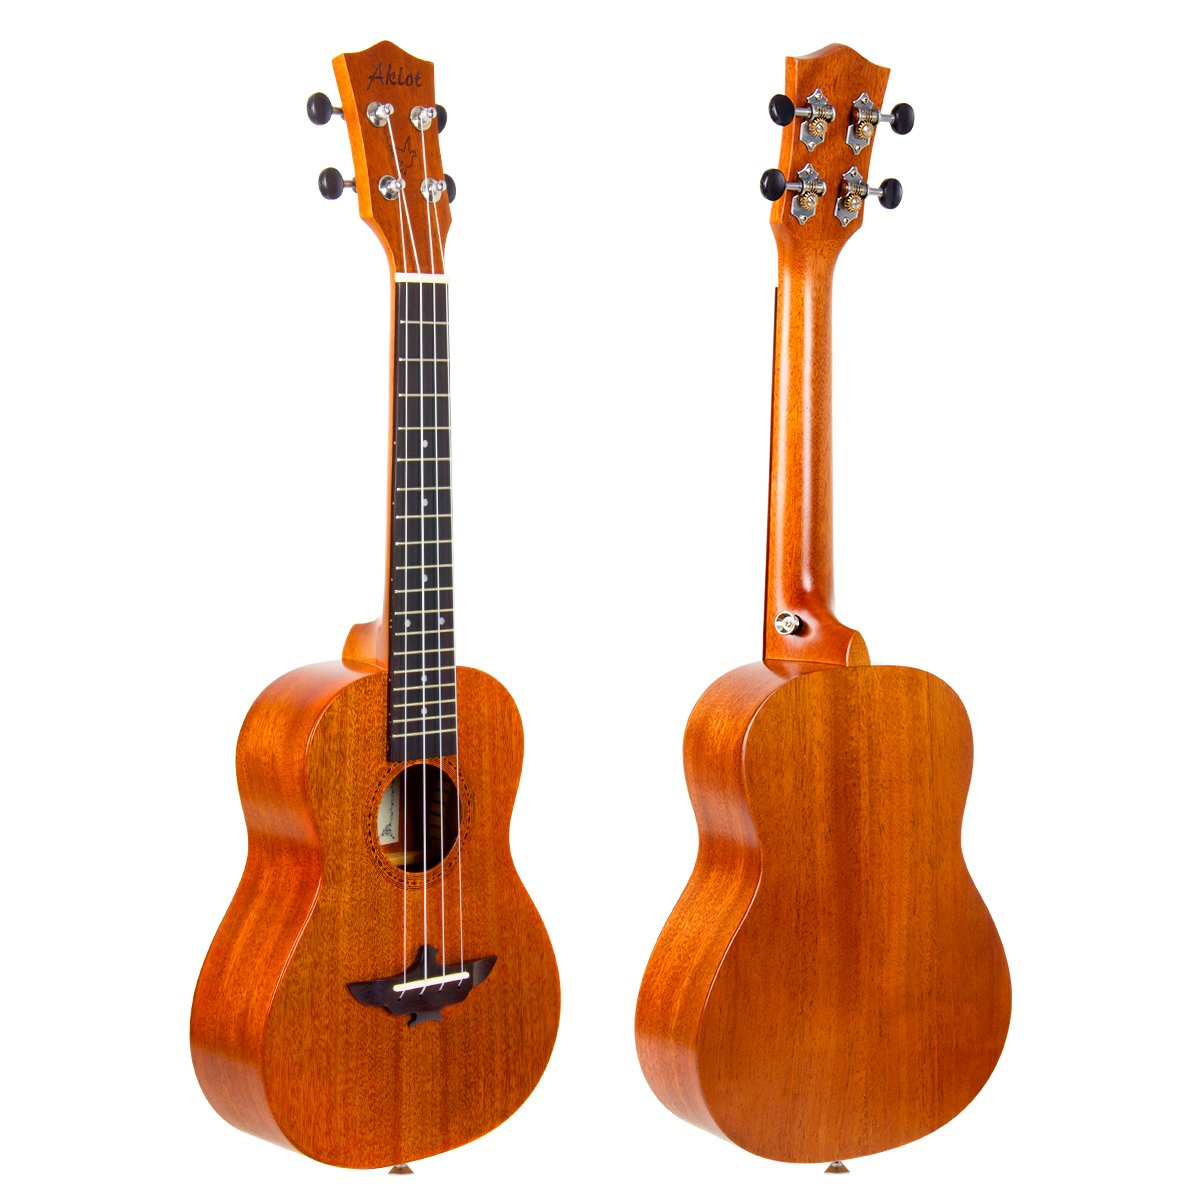 AKLOT Tenor Ukulele All Bamboo Ukelele 26 inch 18 frets 18:1 Advanced Tuner Machine w//Gig Bag Strap Picks AKBT26